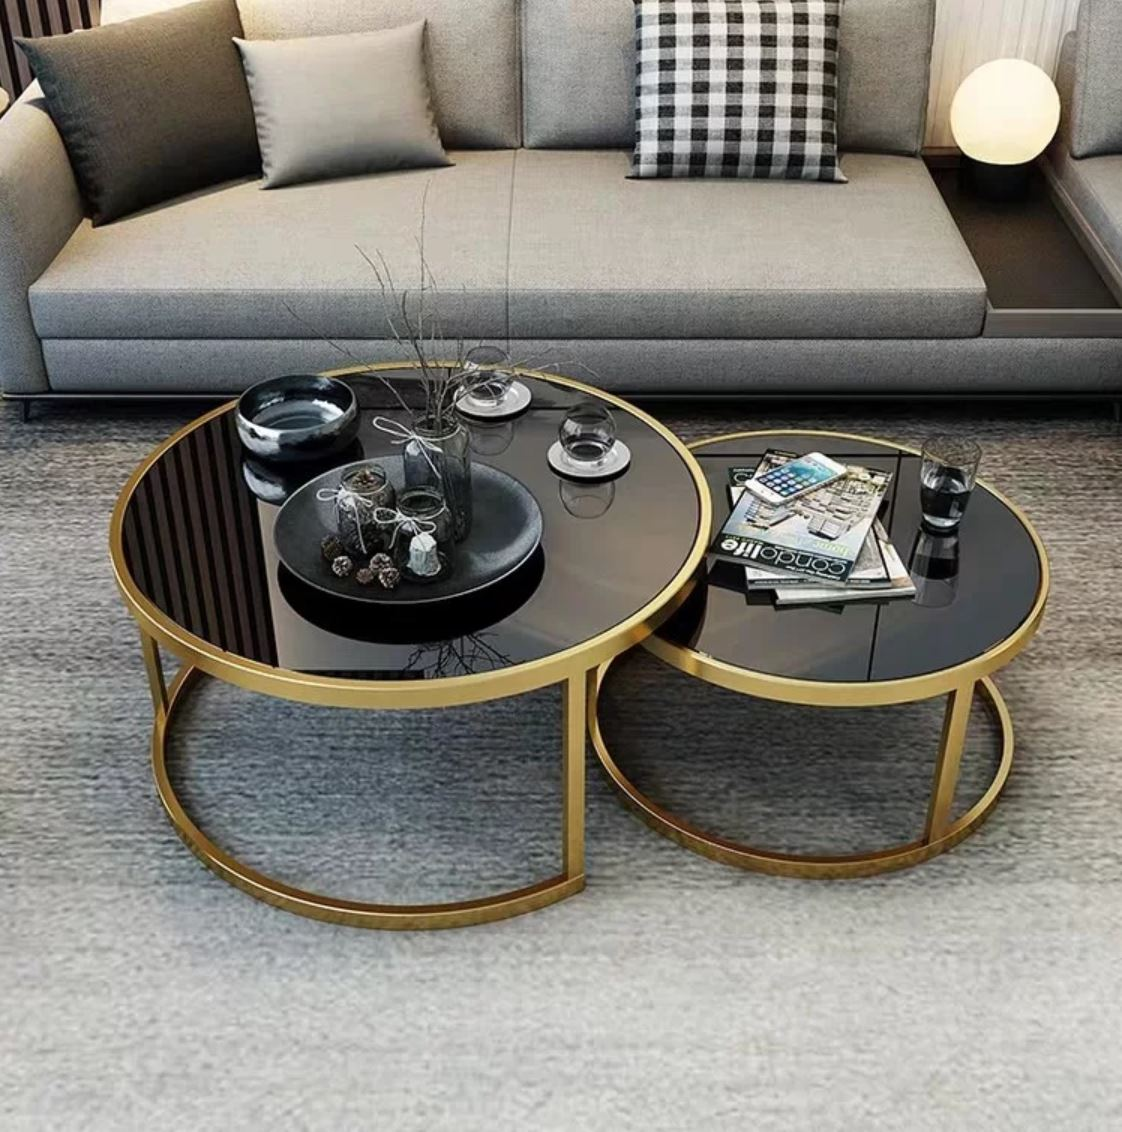 GAYLE Tempered Glass Round Nesting Coffee Table